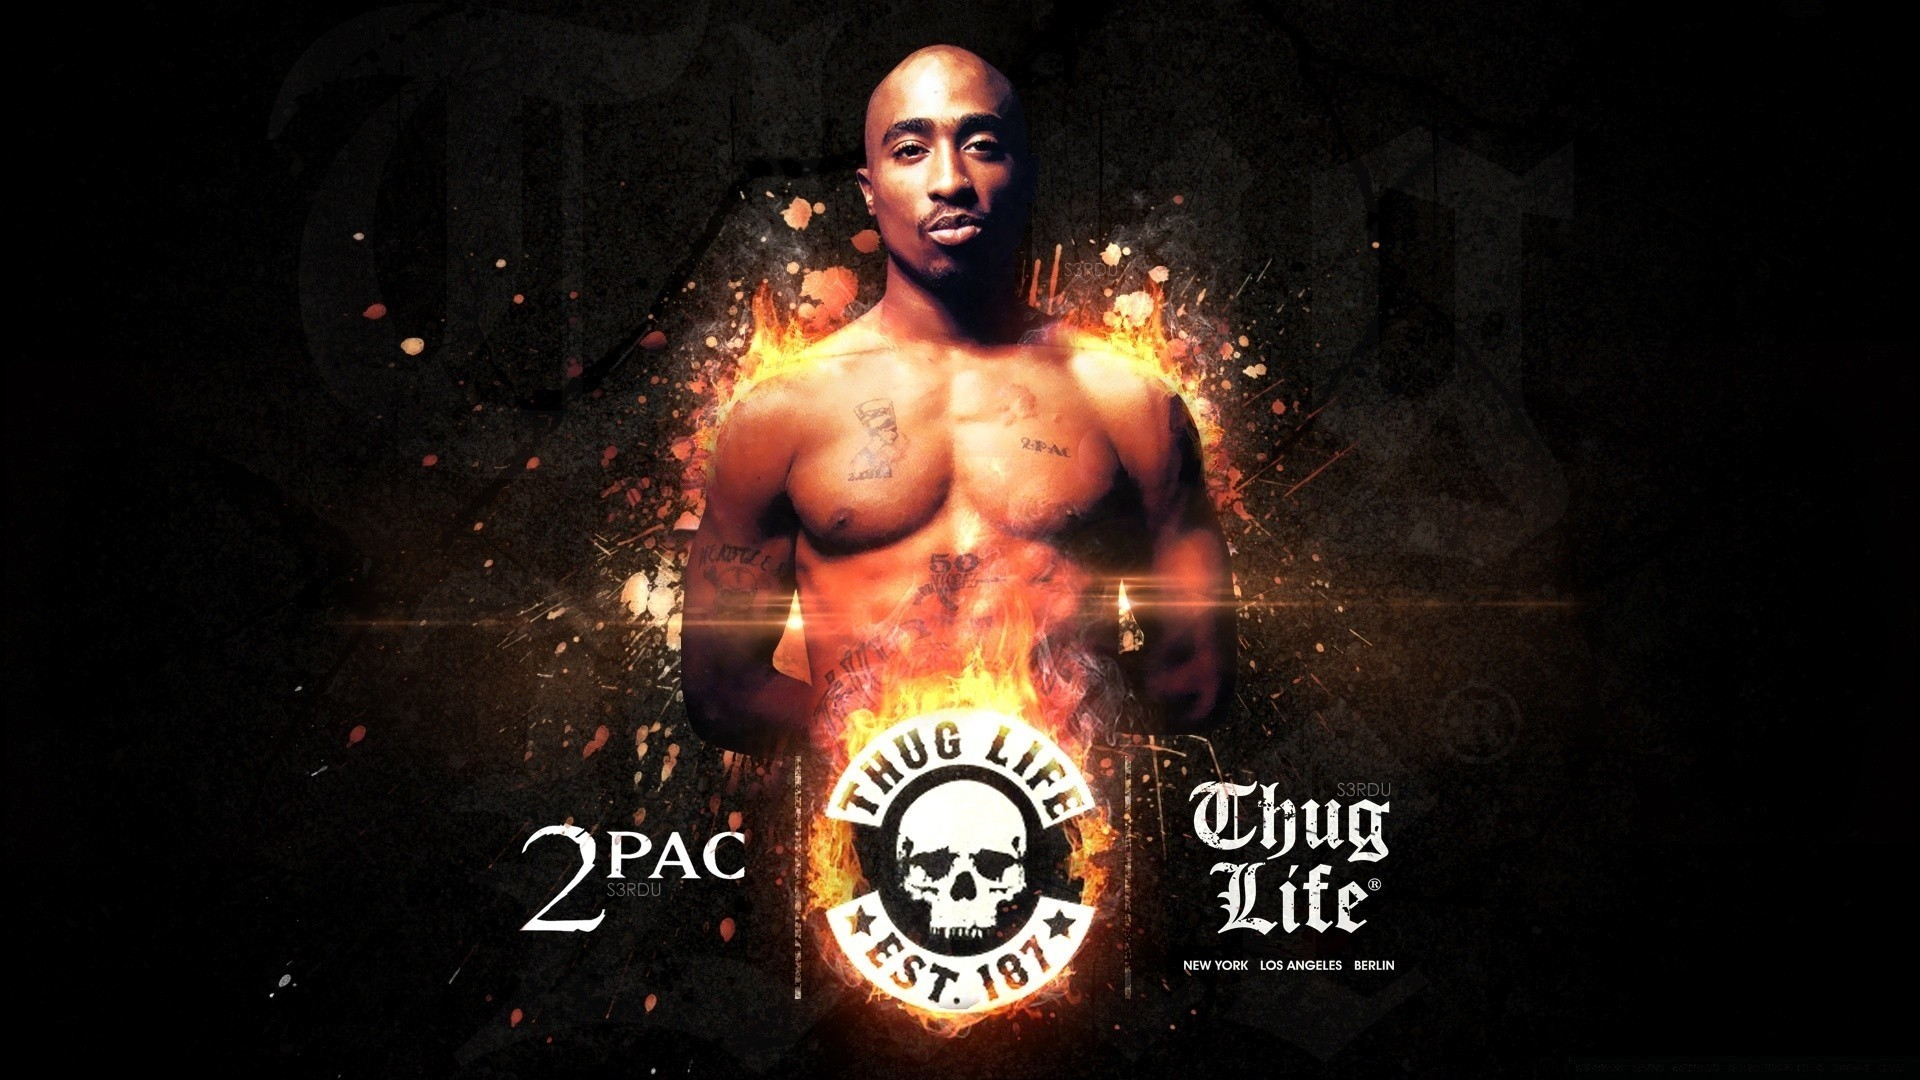 2pac Background Wallpaper